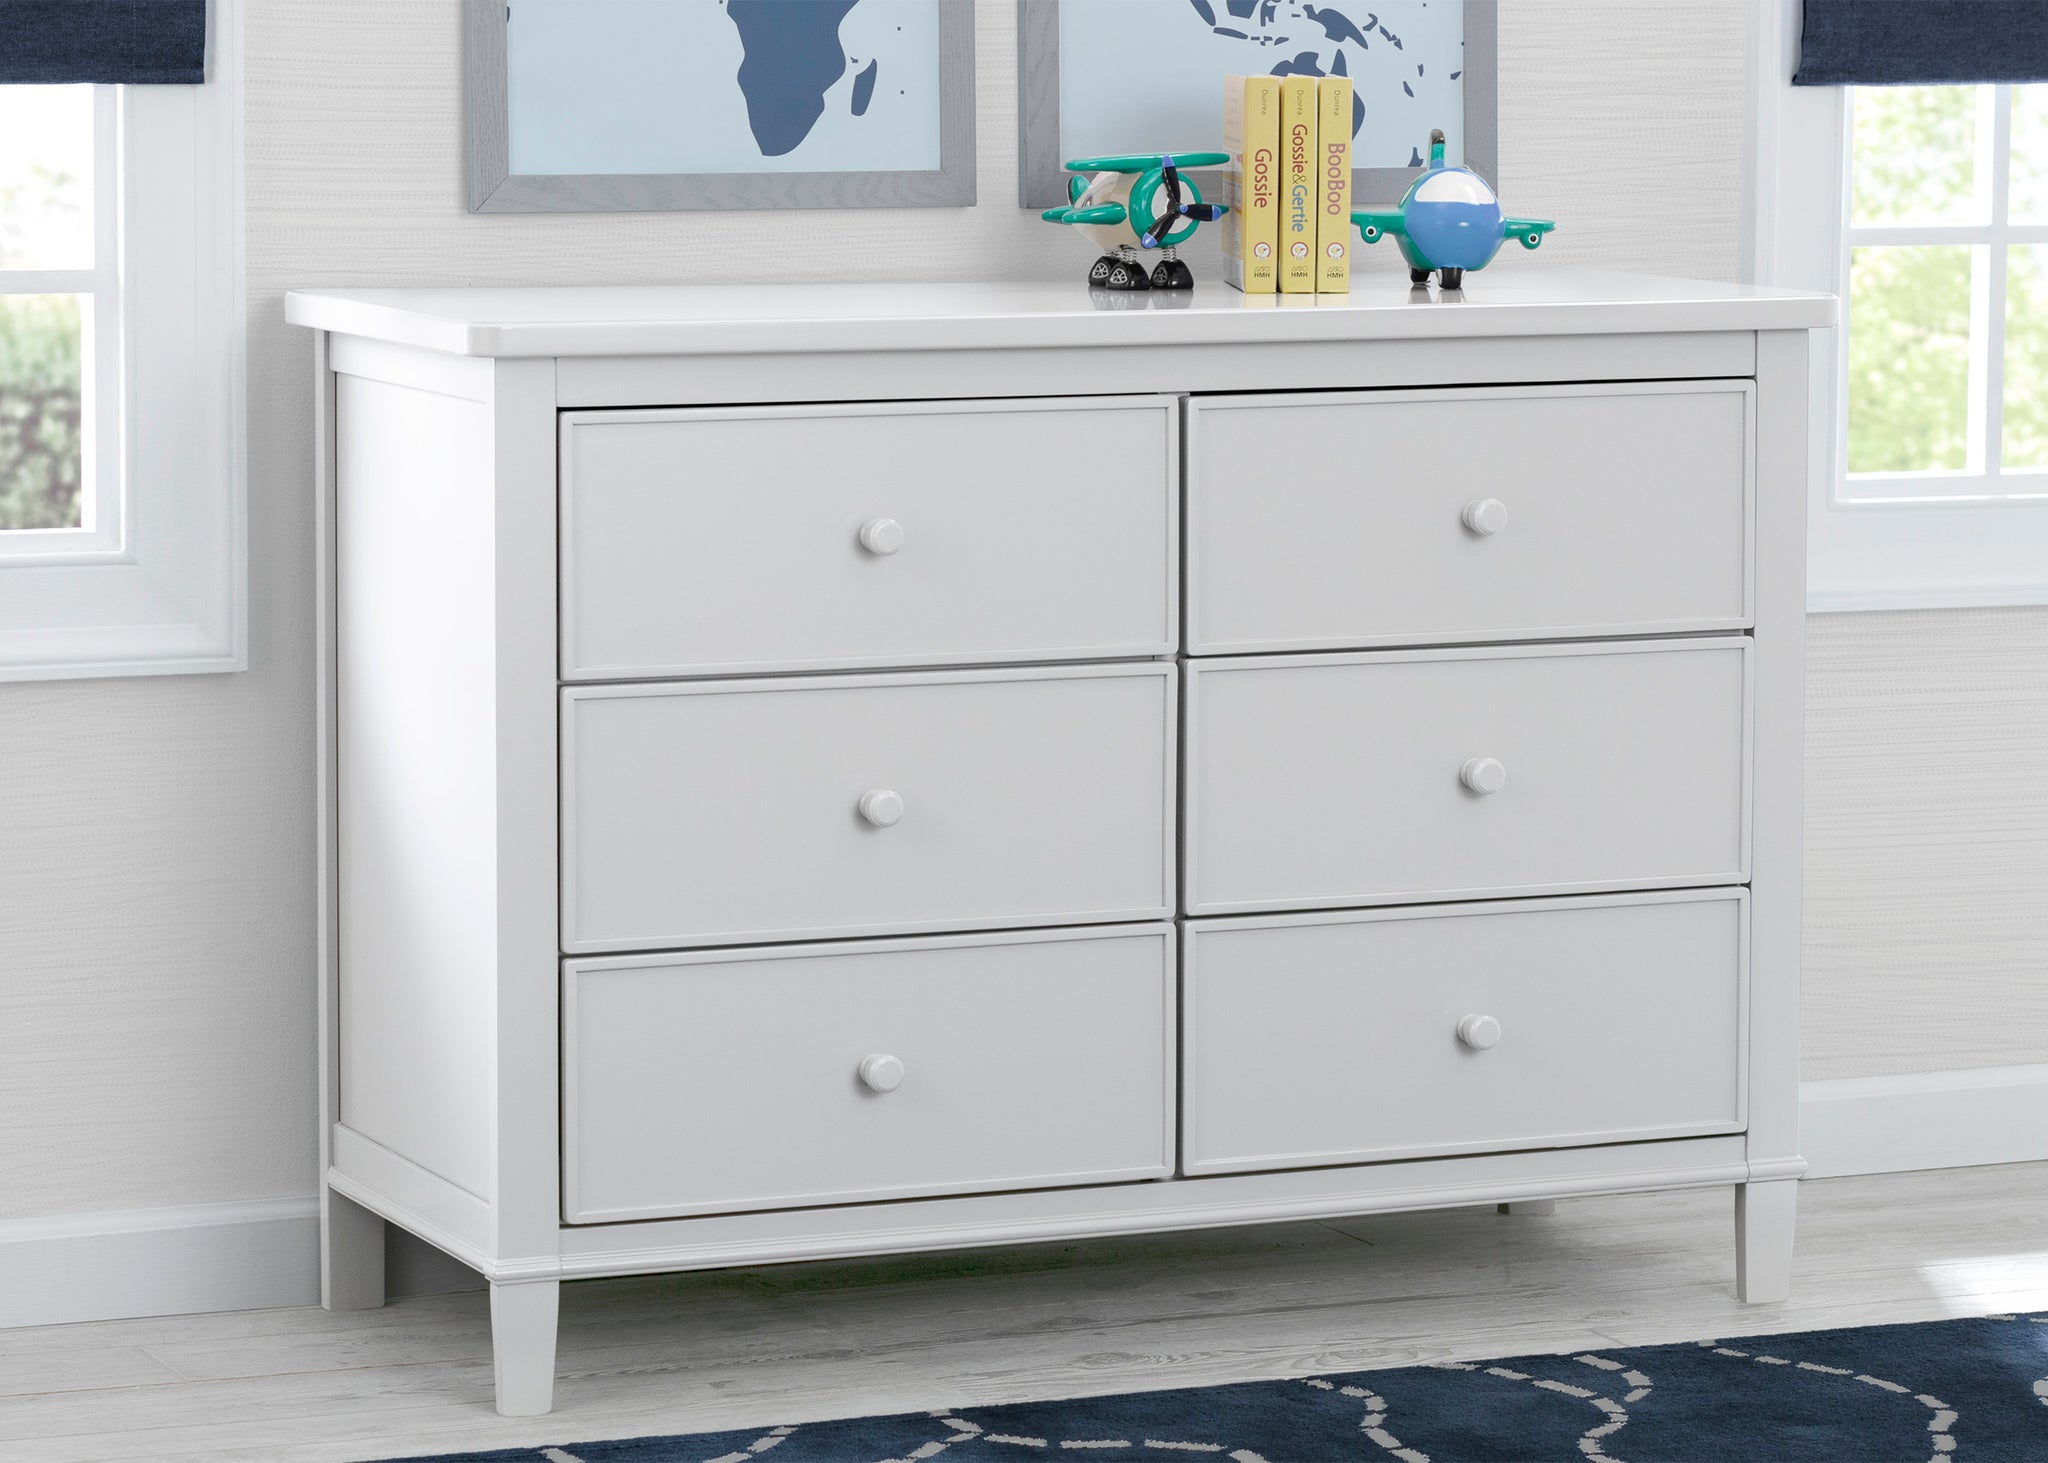 Delta Children White (100) Haven 6 Drawer Dresser, Hangtag View